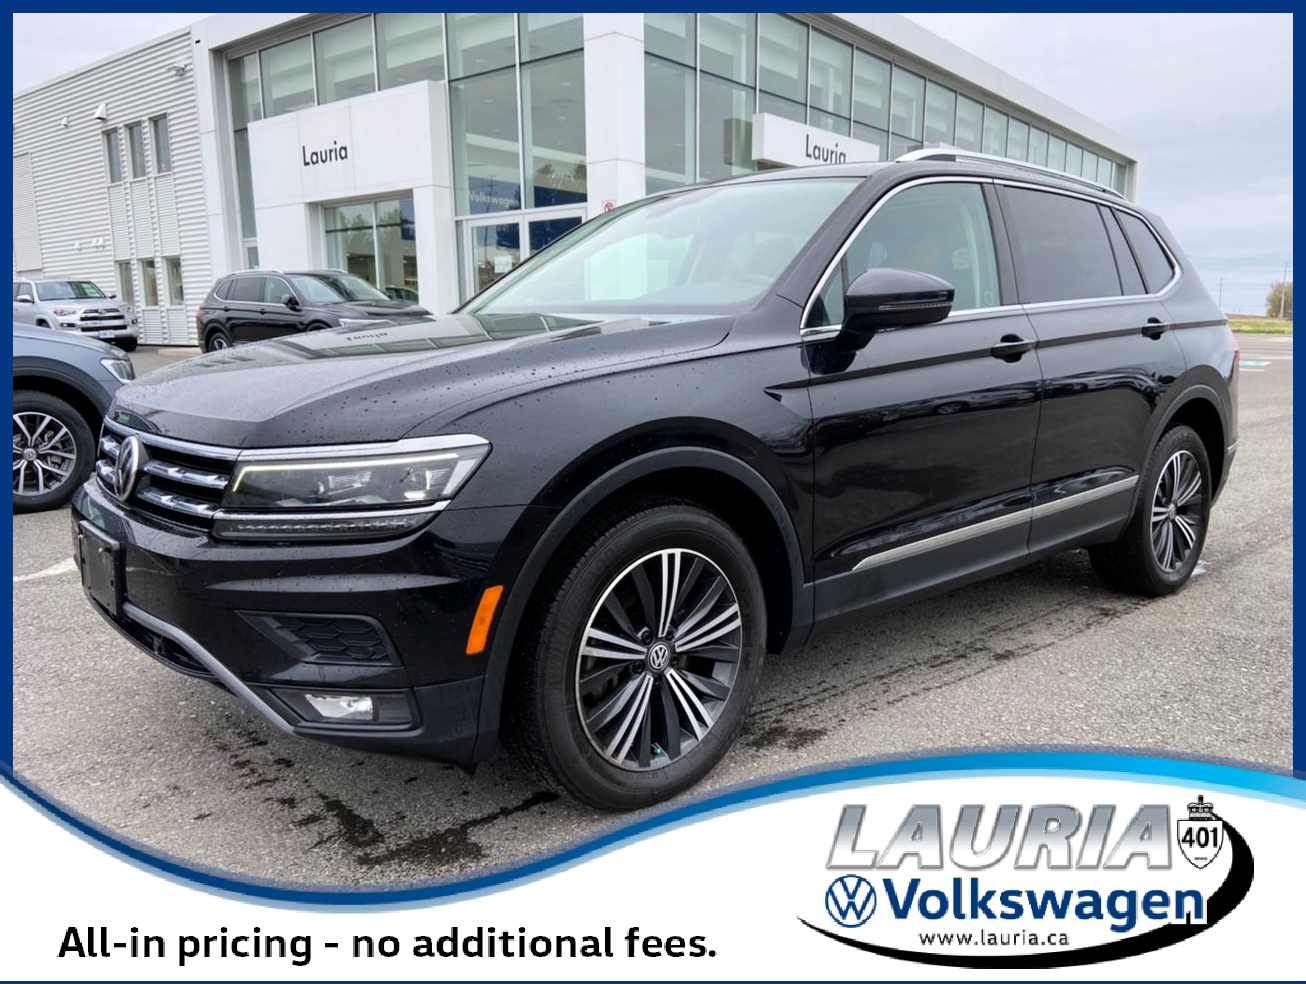 Pre-Owned 2018 Volkswagen Tiguan 2.0T Highline 4Motion AWD - LOADED!